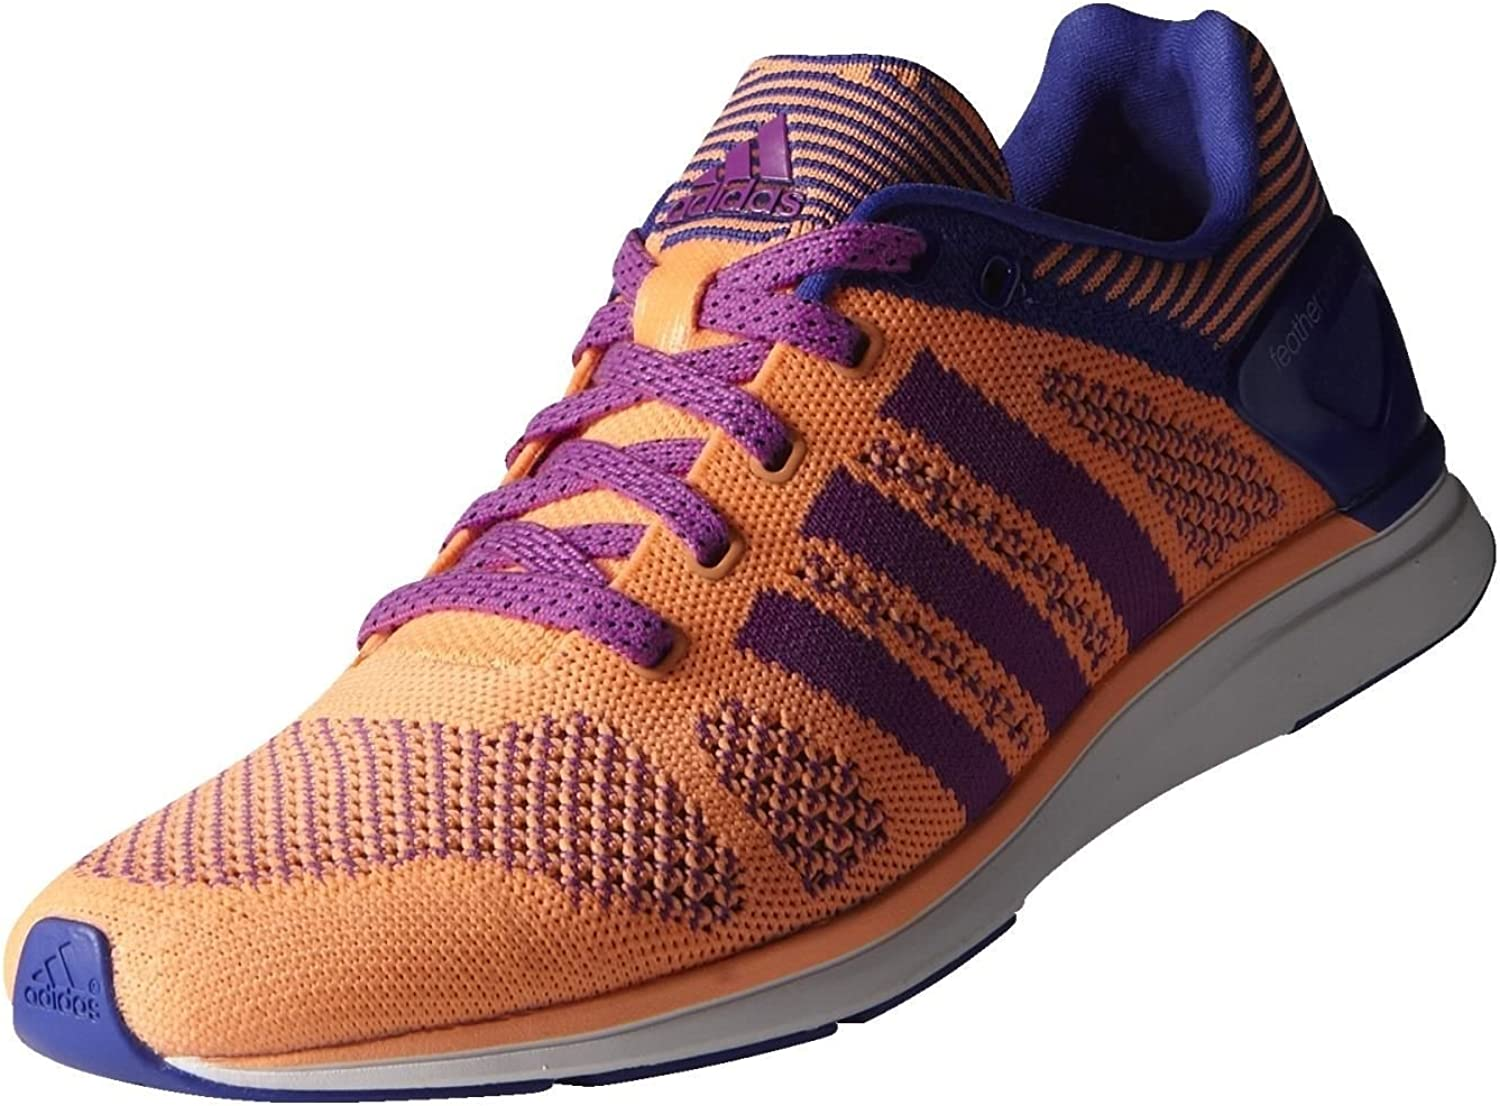 Adidas Woherrar Baskets Adidas Adidas AdiZero Feather Pri orange Femme Low orange Storlek  7.5